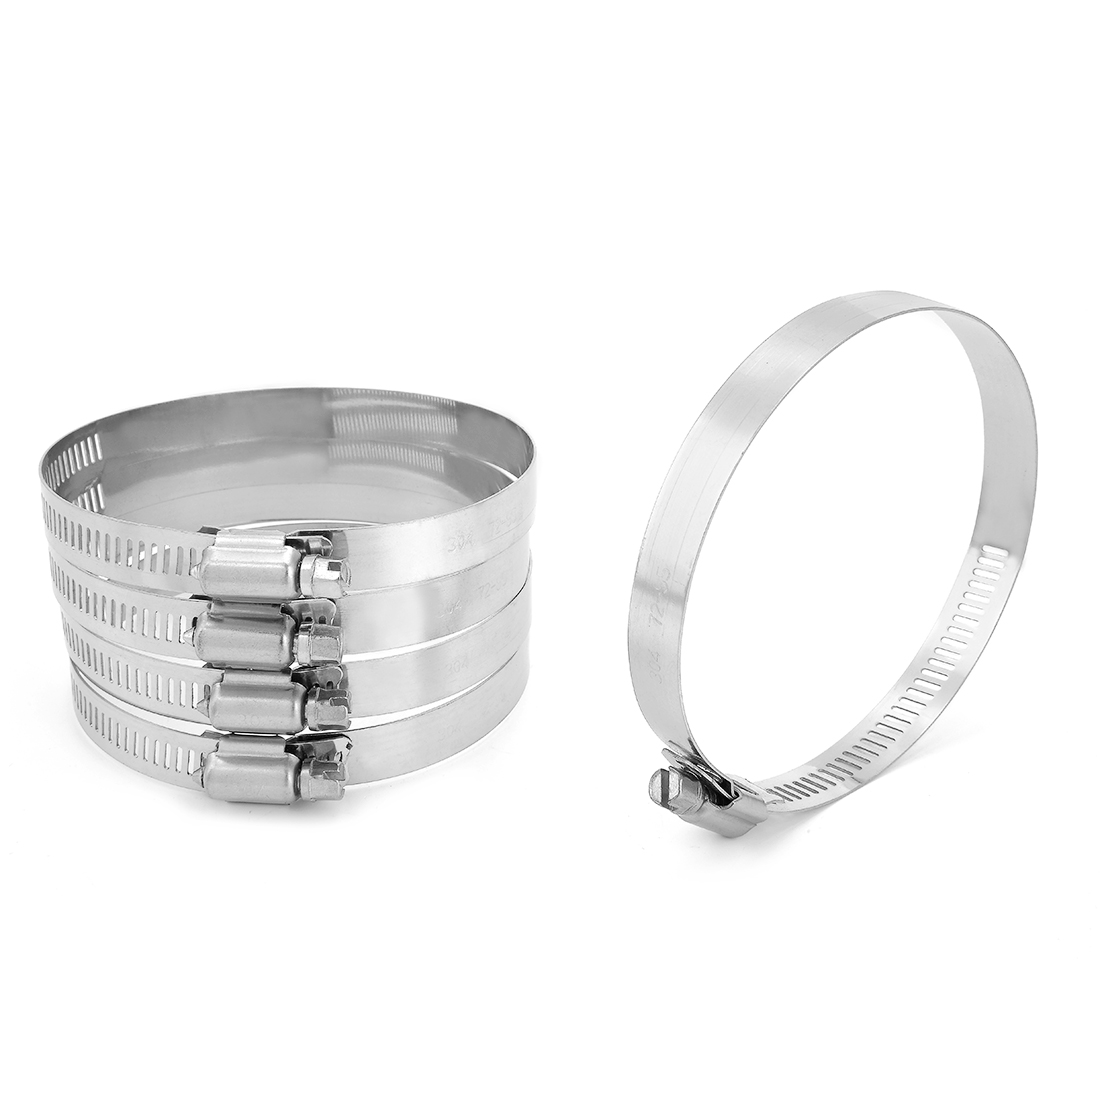 2.83-inch to 3.74-inch Clamping Range 304 Stainless Steel American Worm Gear Hose Clamp 5pcs